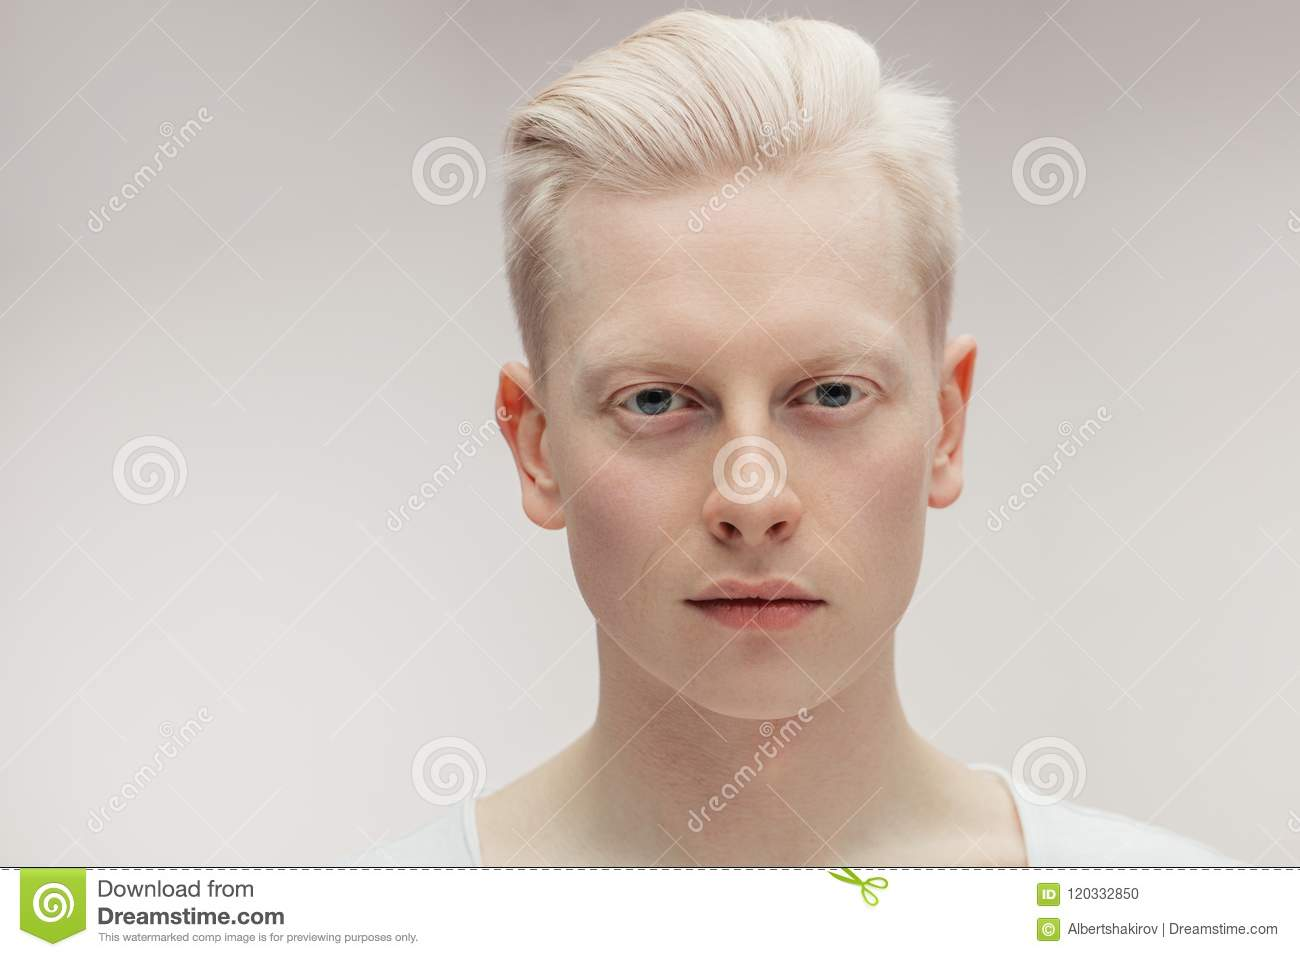 Fashion model male on white handsome albino guy closeup